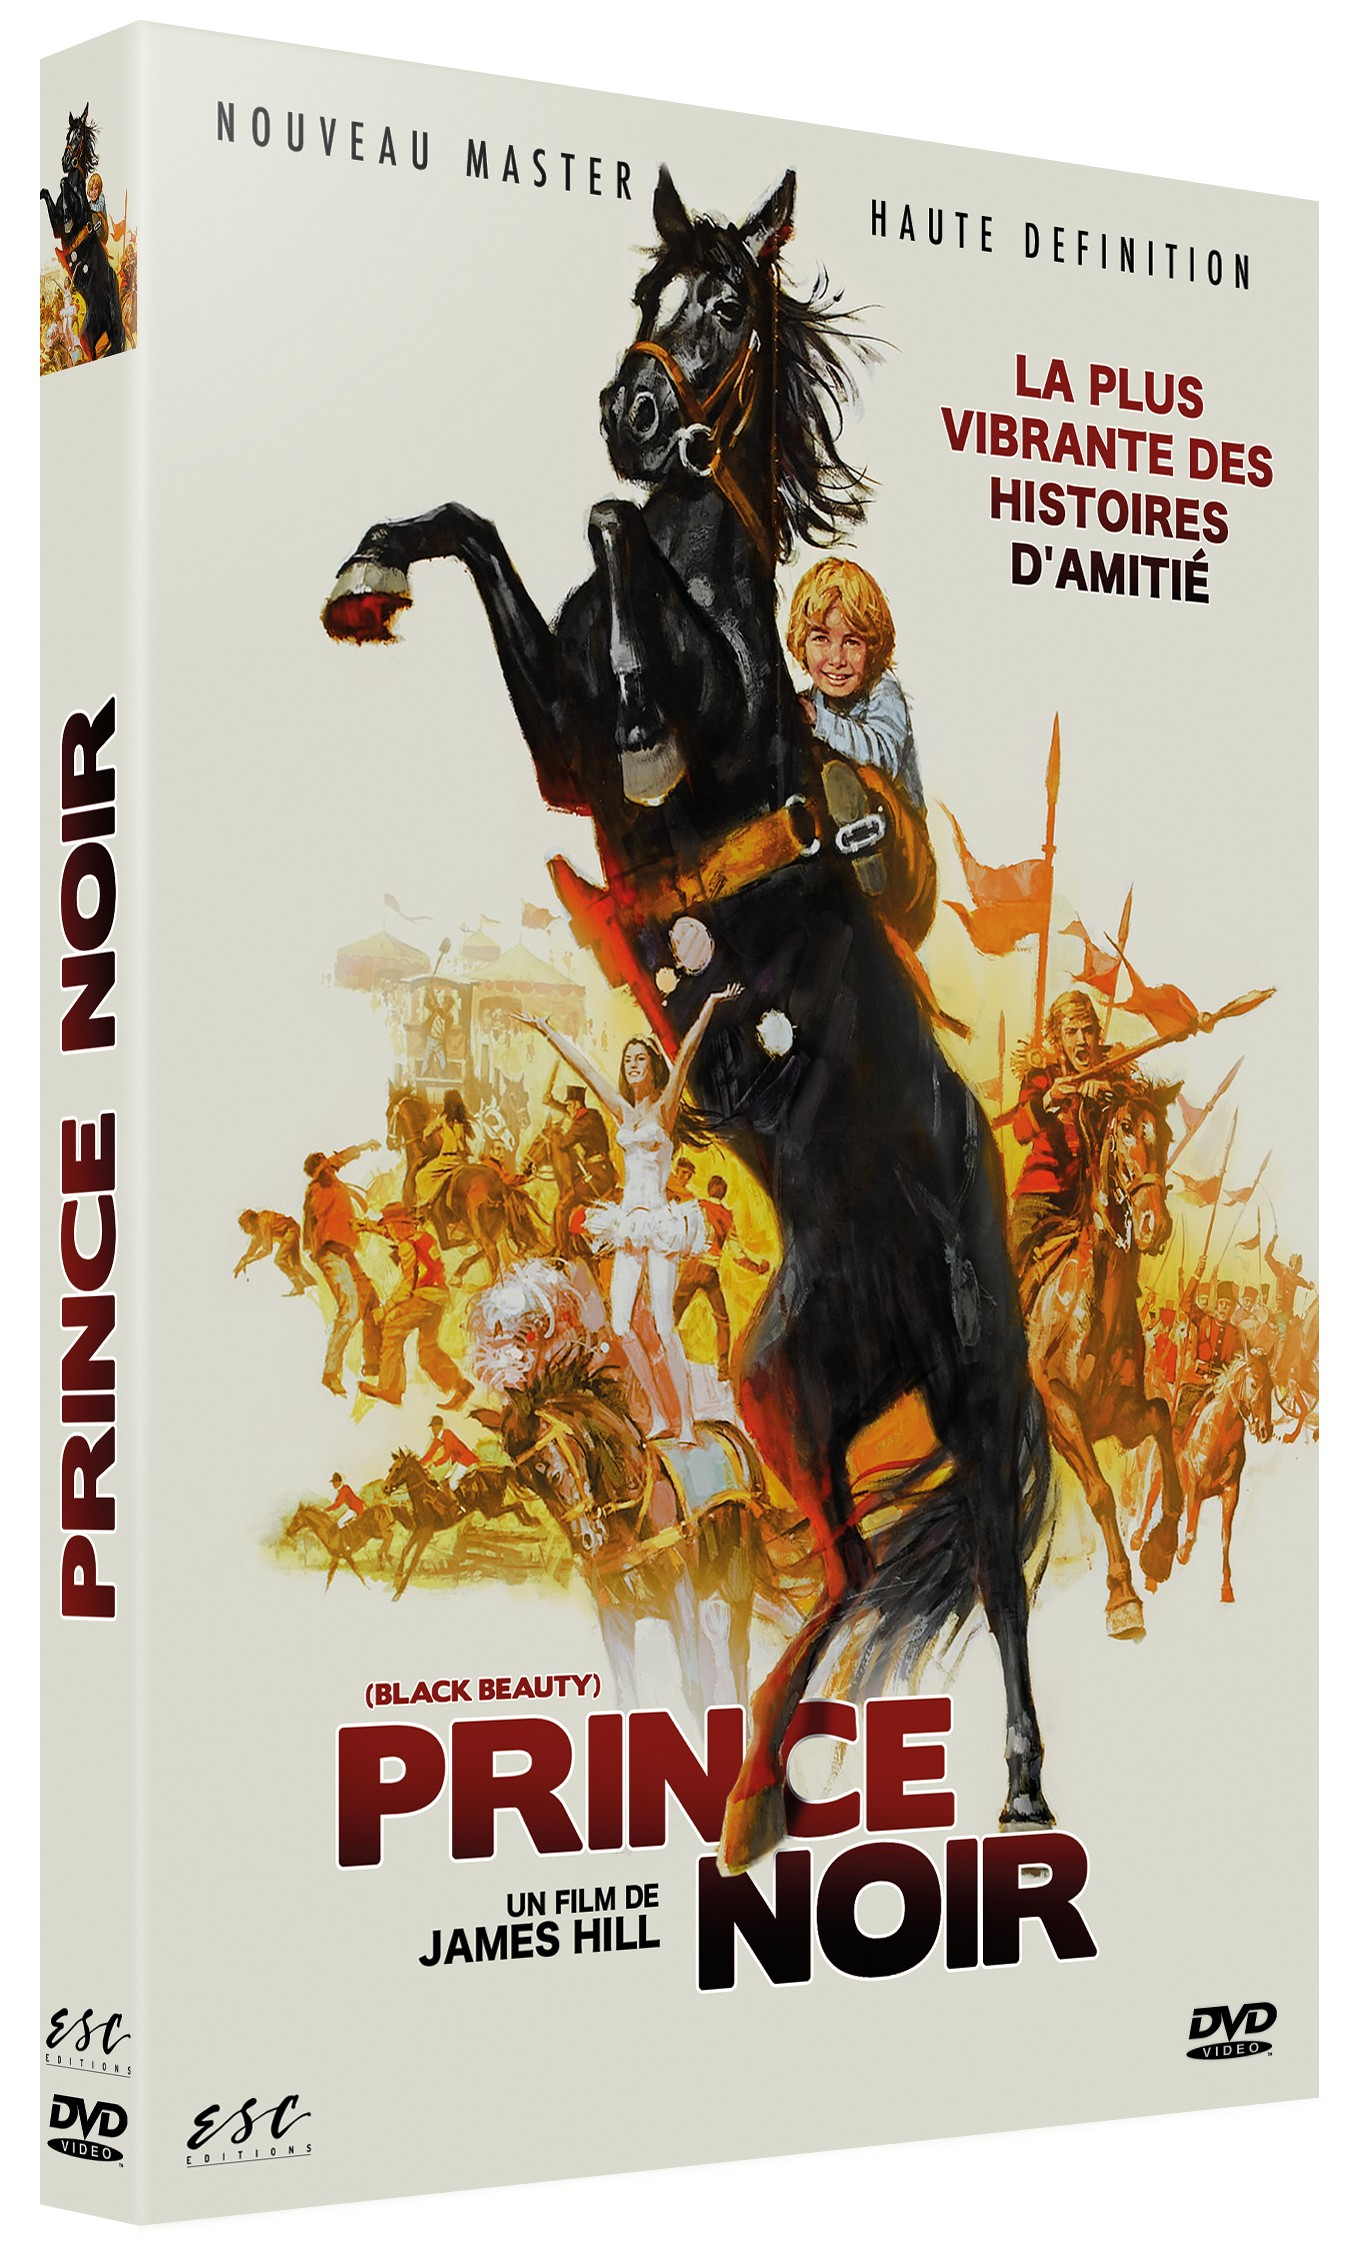 PRINCE NOIR (BLACK BEAUTY)